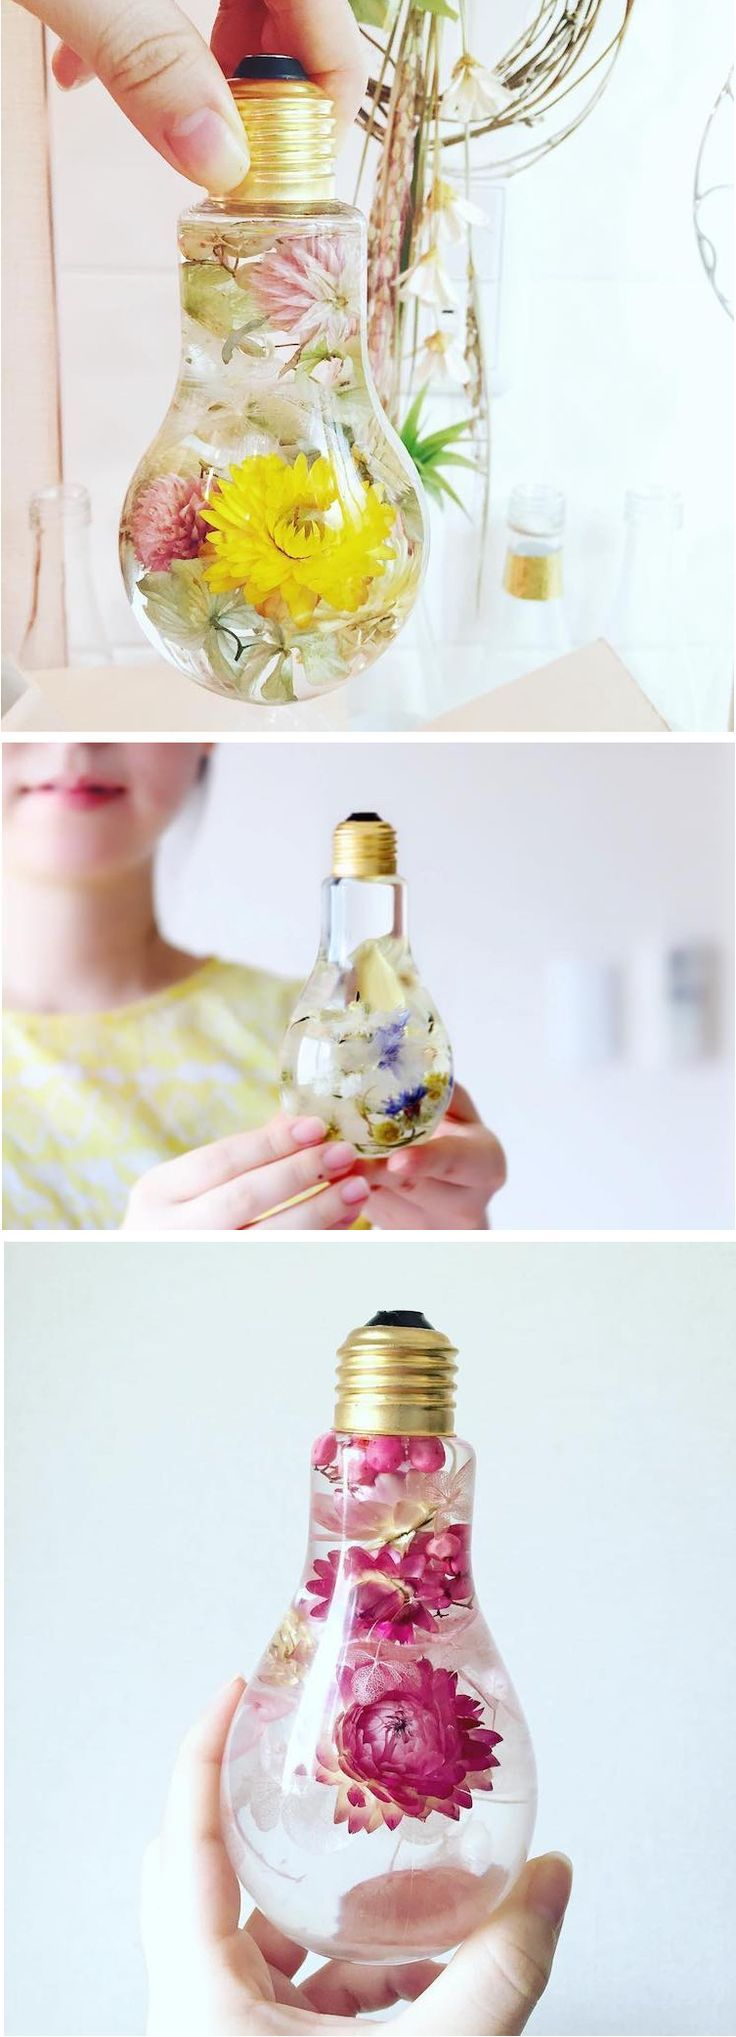 Pinterest : light bulb flower vase - startupinsights.org